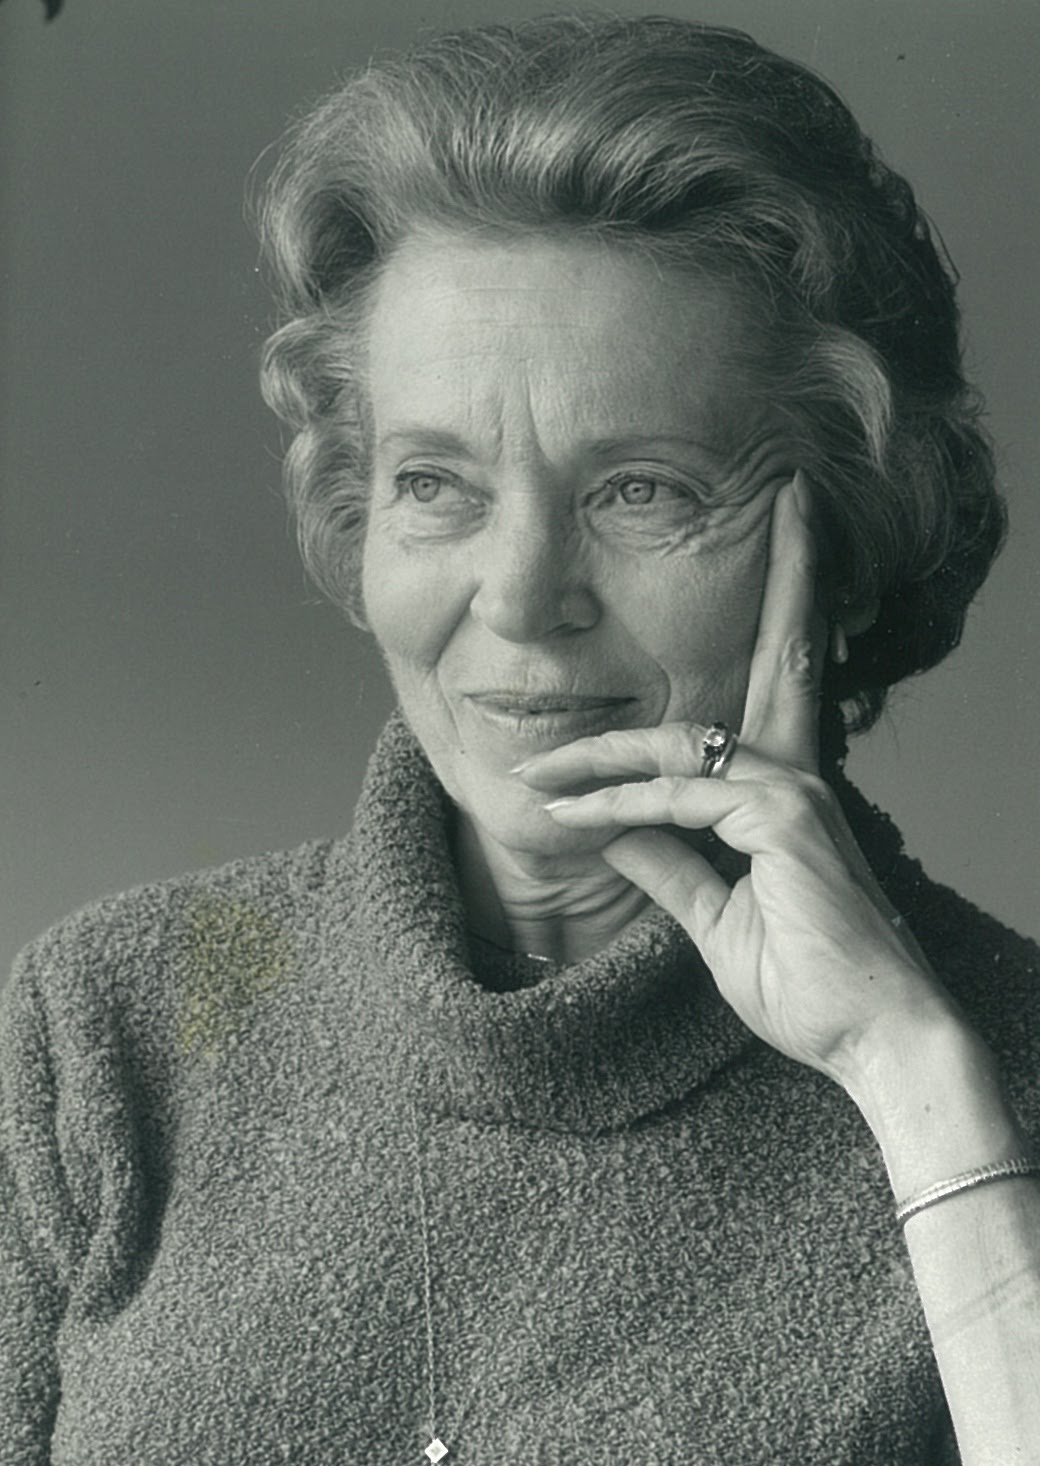 Junior Brunelli - Elisabeth Elliot